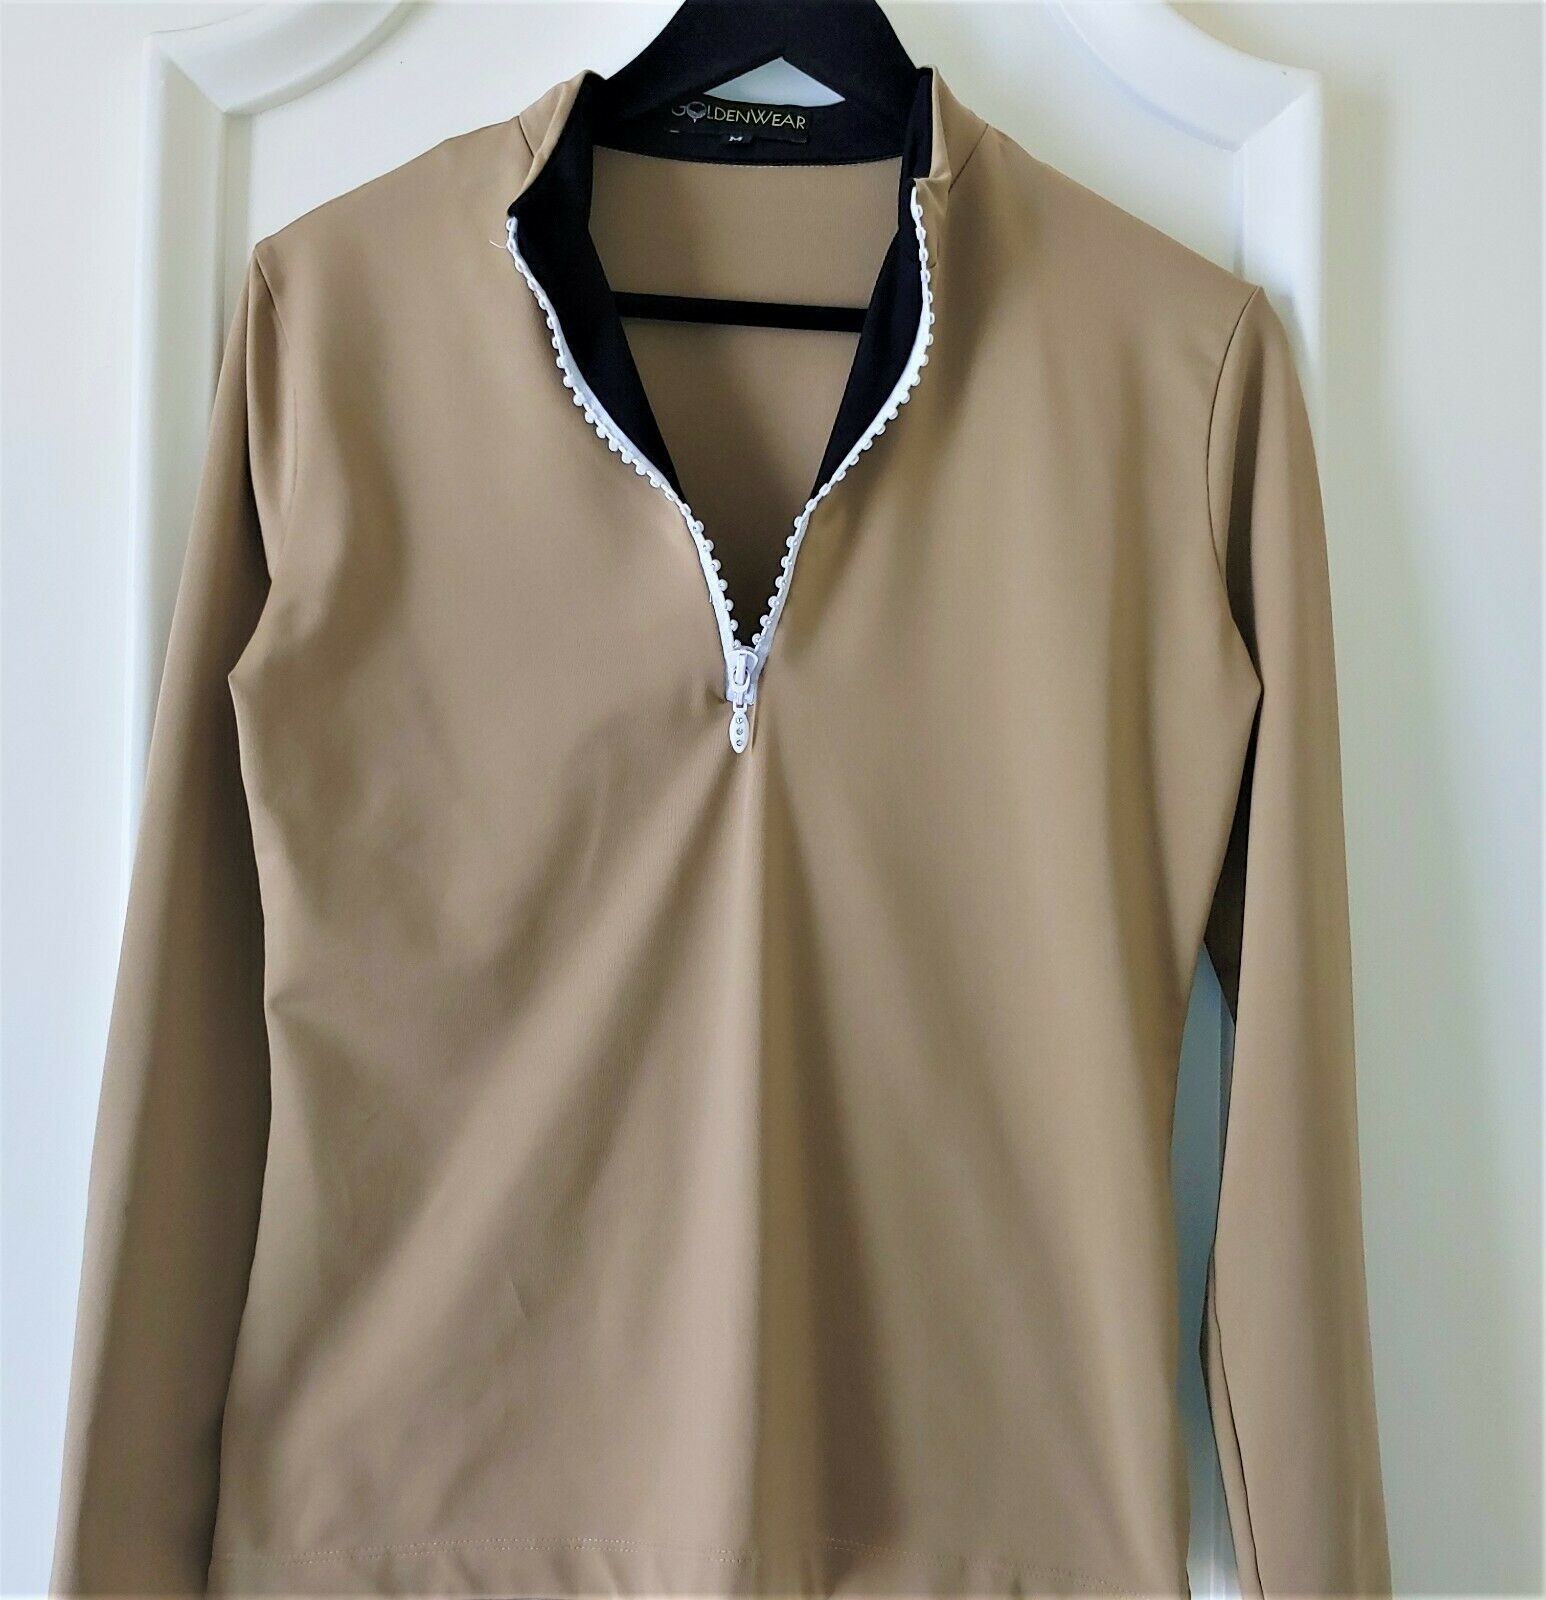 GOLF & CASUAL TAN LONG SLEEVE TOP WITH ZIPPER NECK  - NEW - GOLDENWEAR